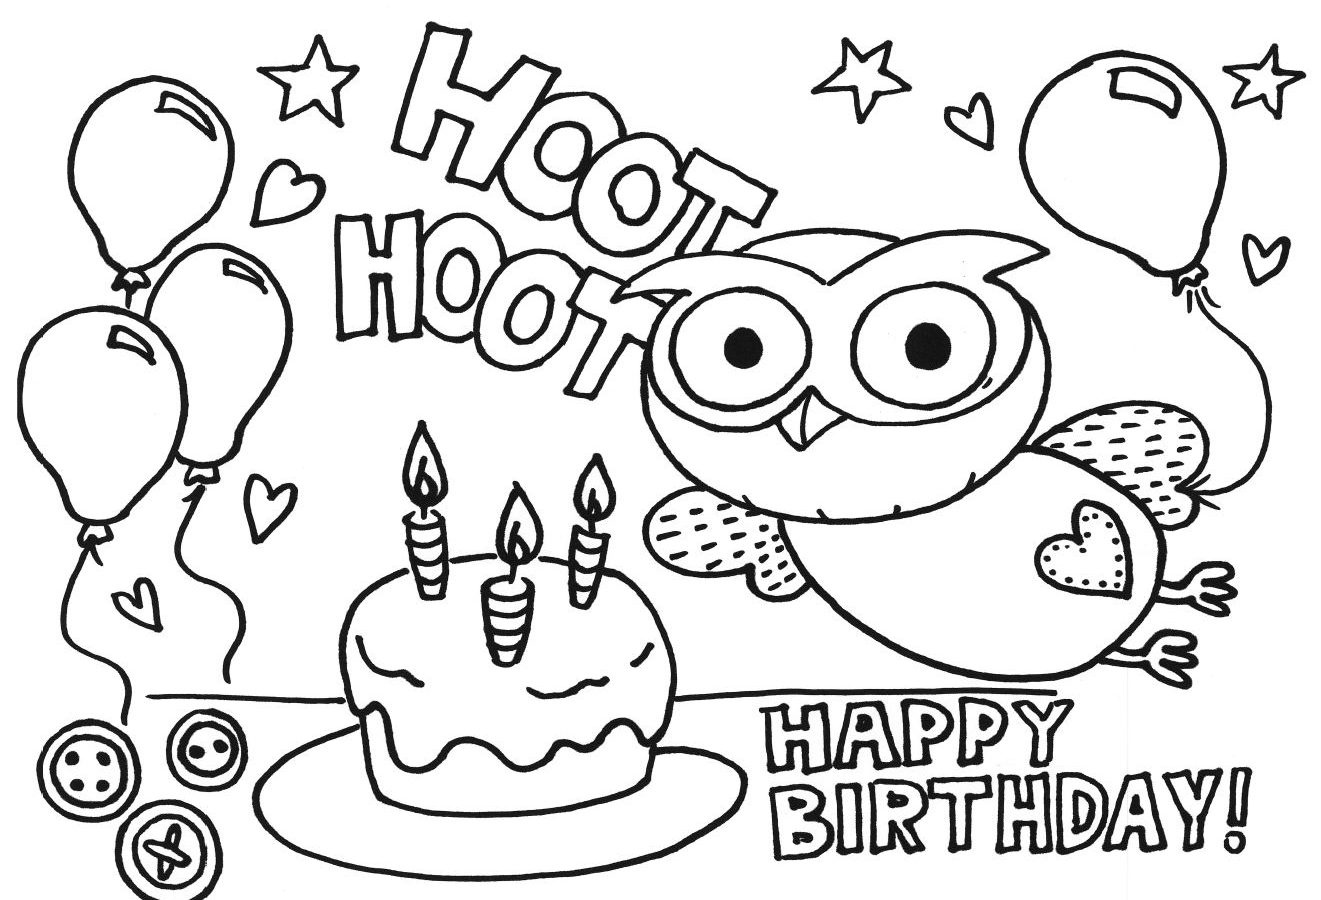 happy birthday sister coloring pages ; coloring-pages-of-cartoon-saying-happy-birthday-sister-pictures-download-10-k